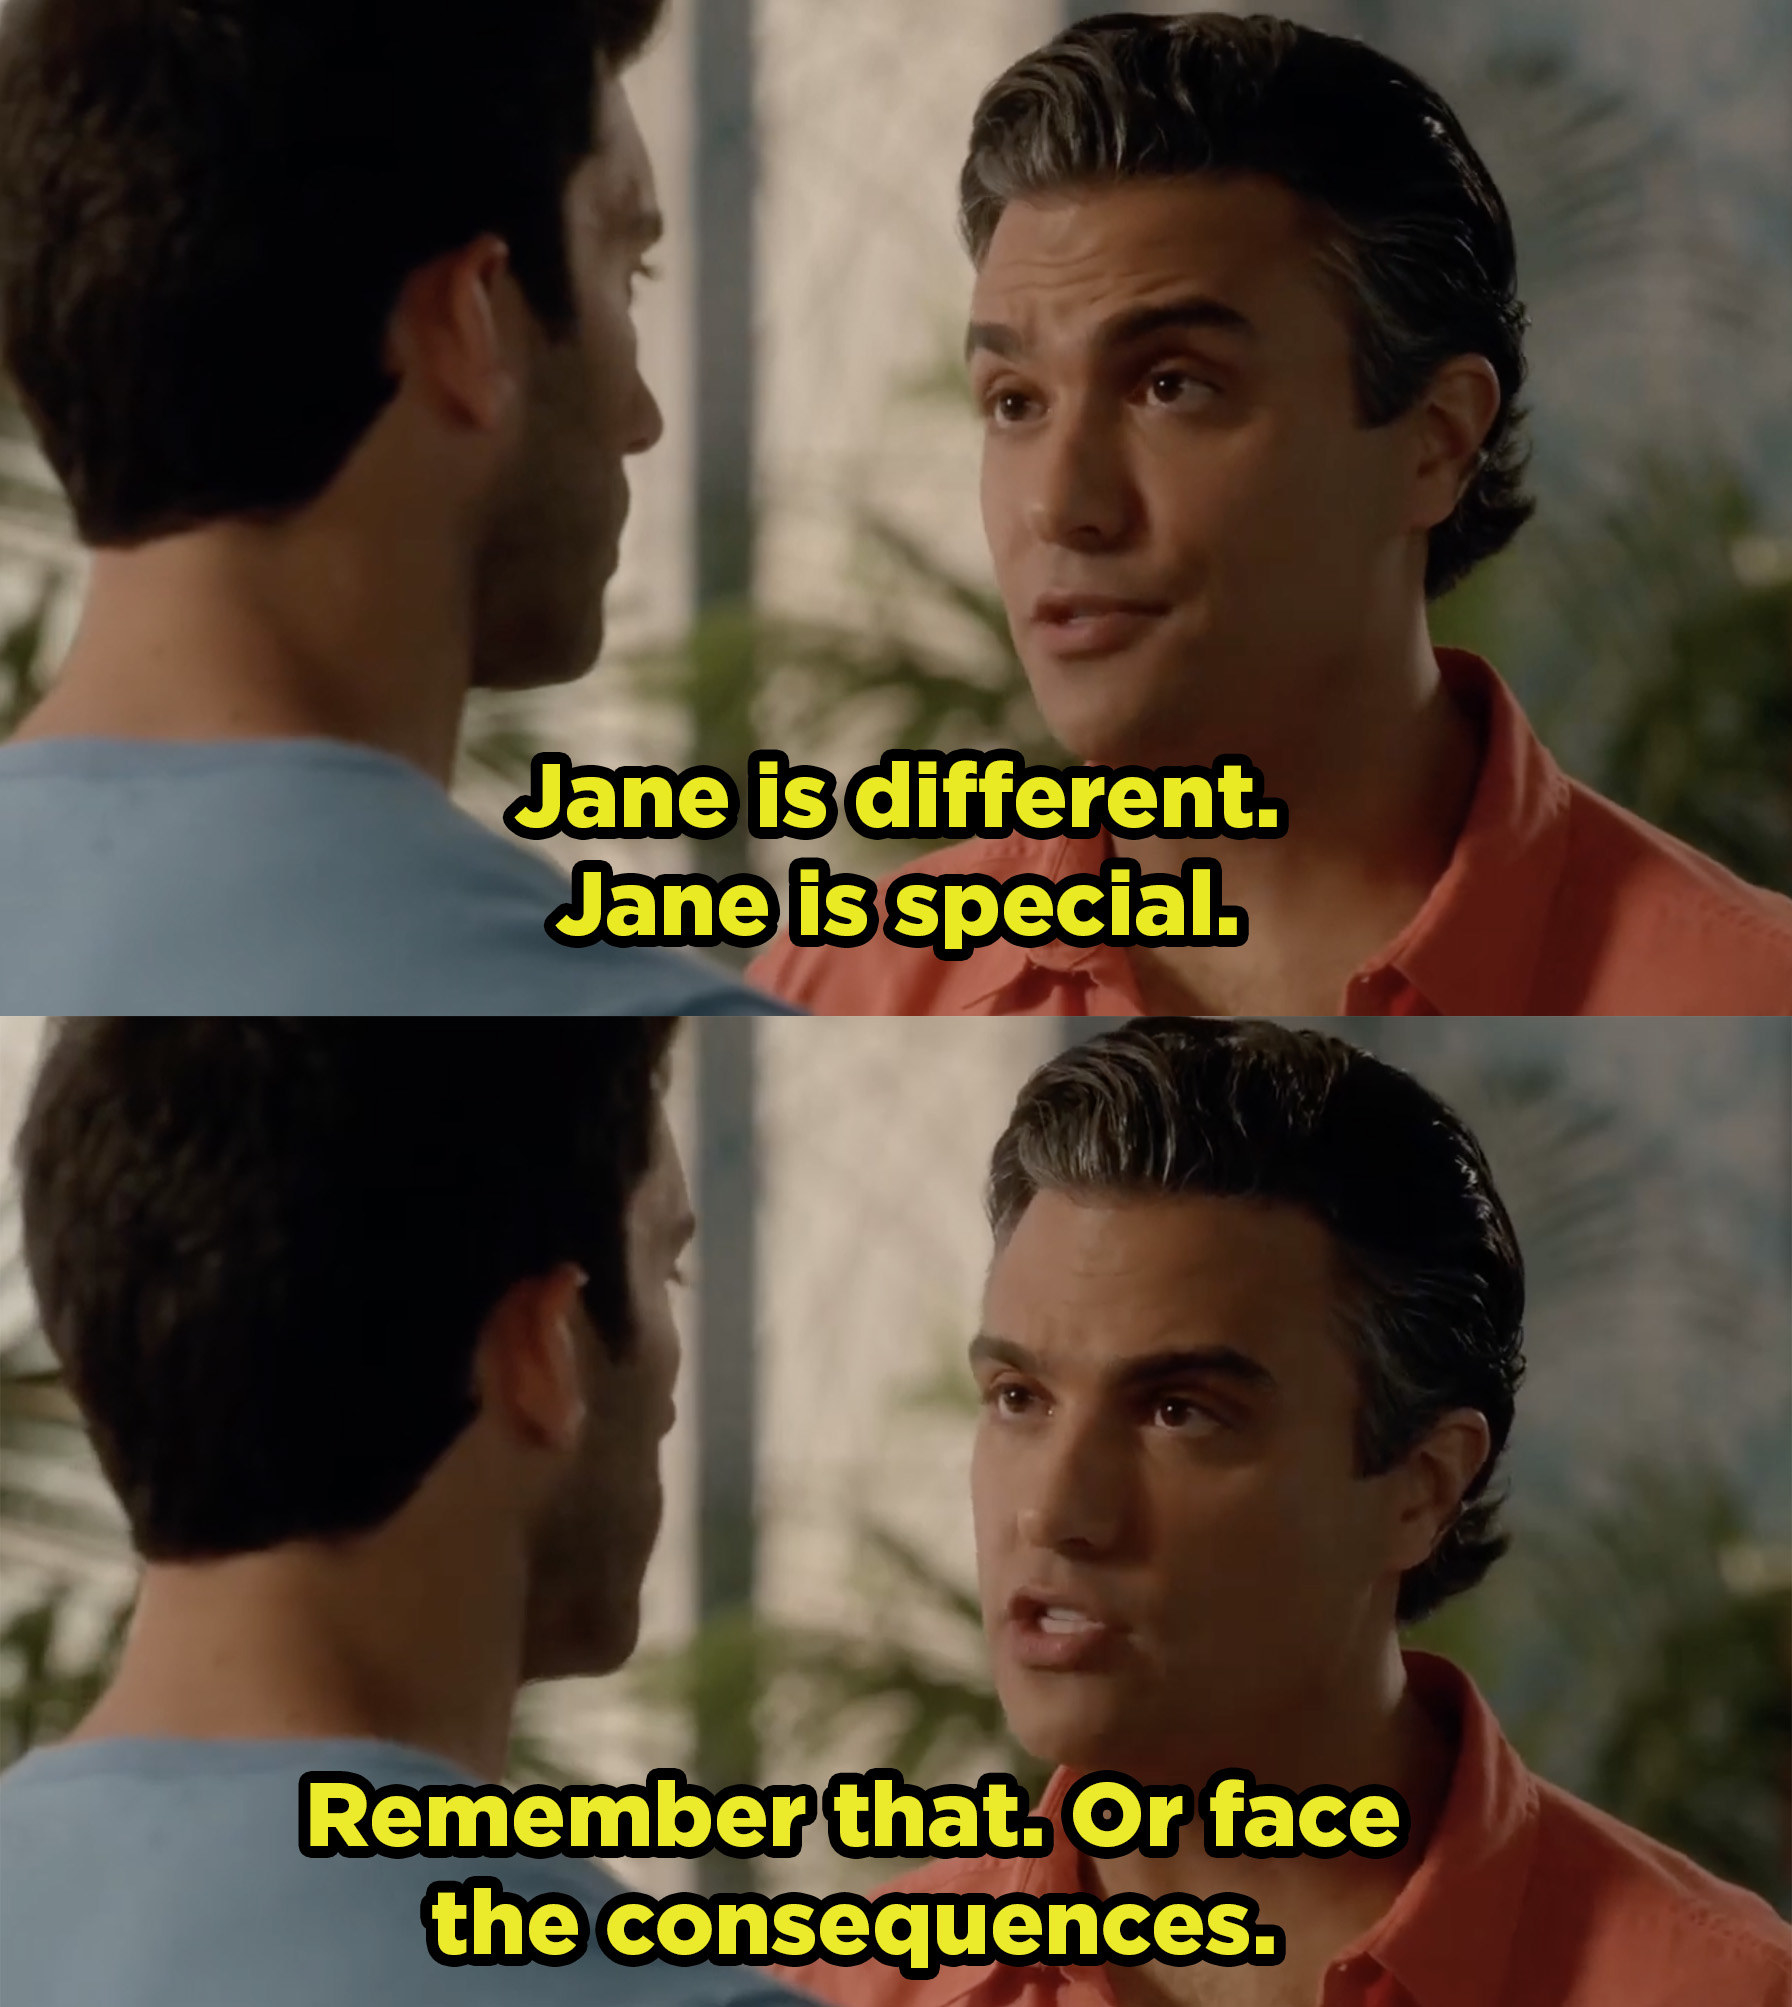 Rogelio telling Rafael that Jane is a special girl and he should treat her right.